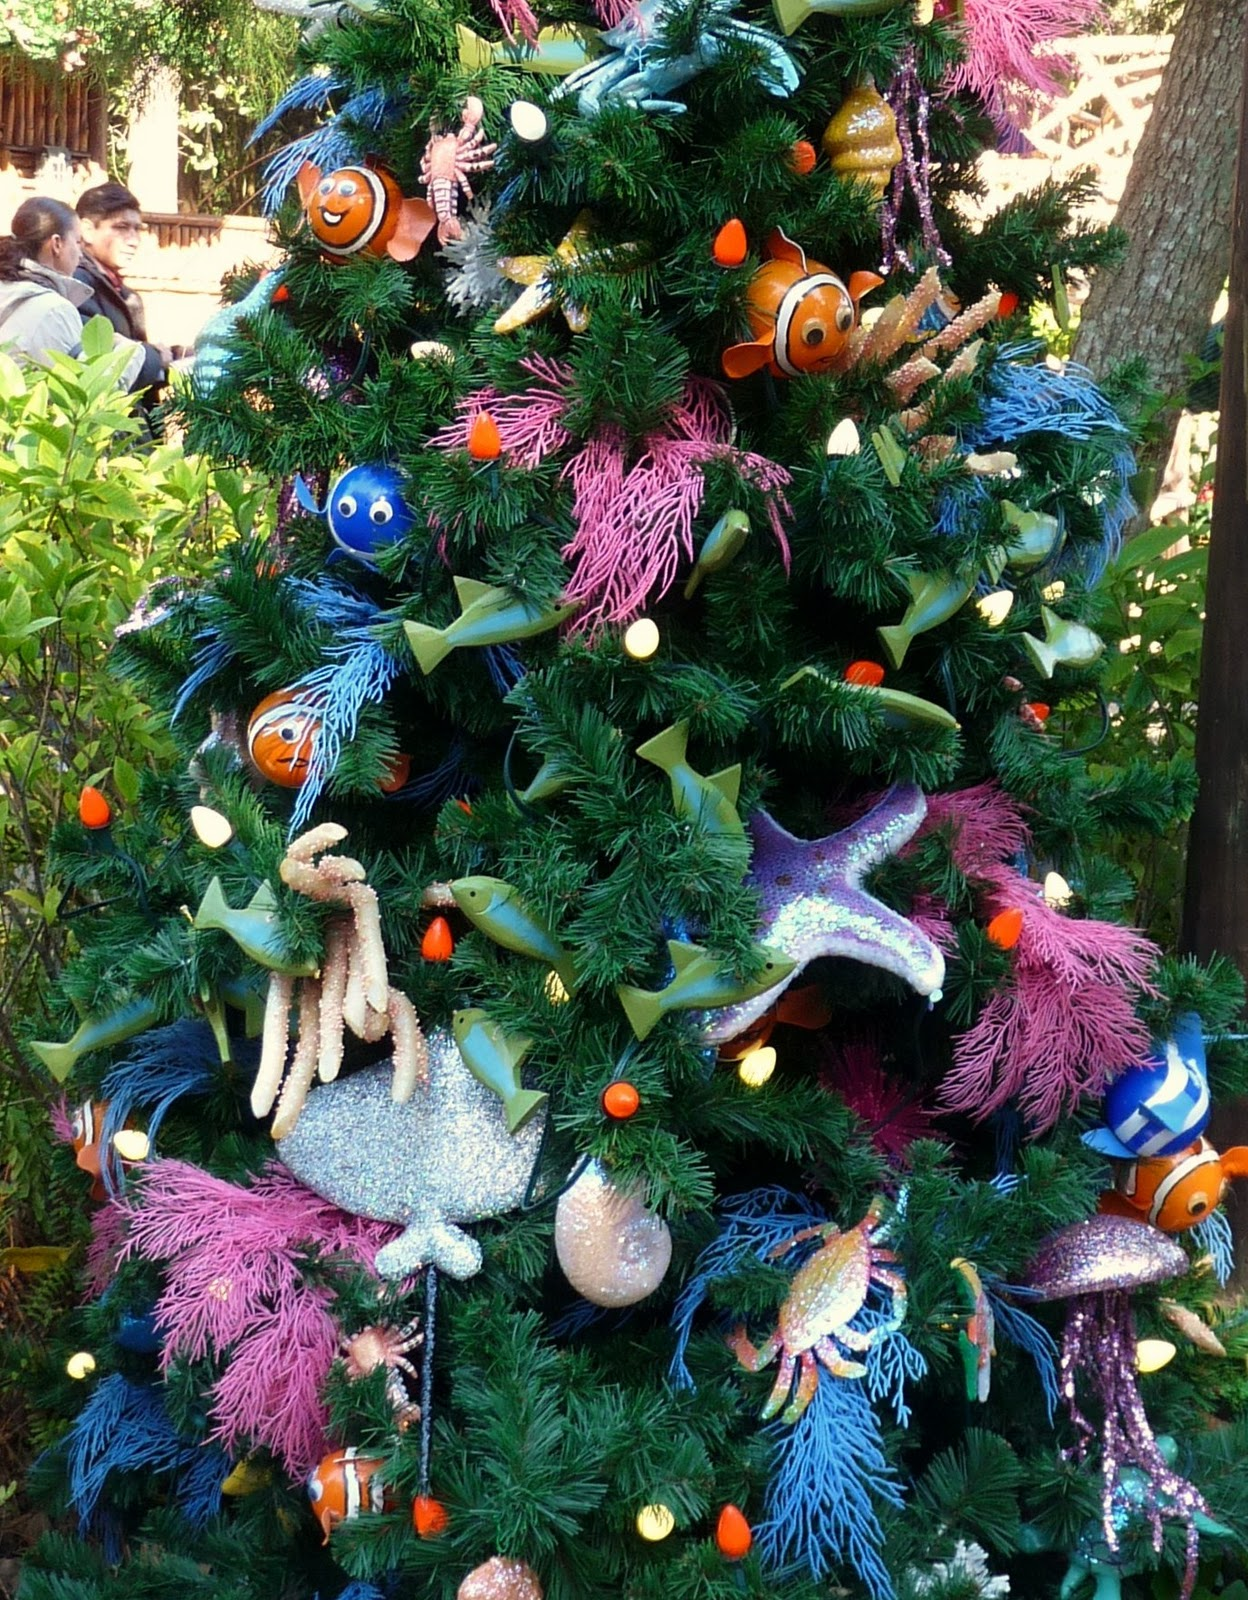 finding nemo theme christmas tree disneys animal kingdom - Disney Themed Christmas Decorations